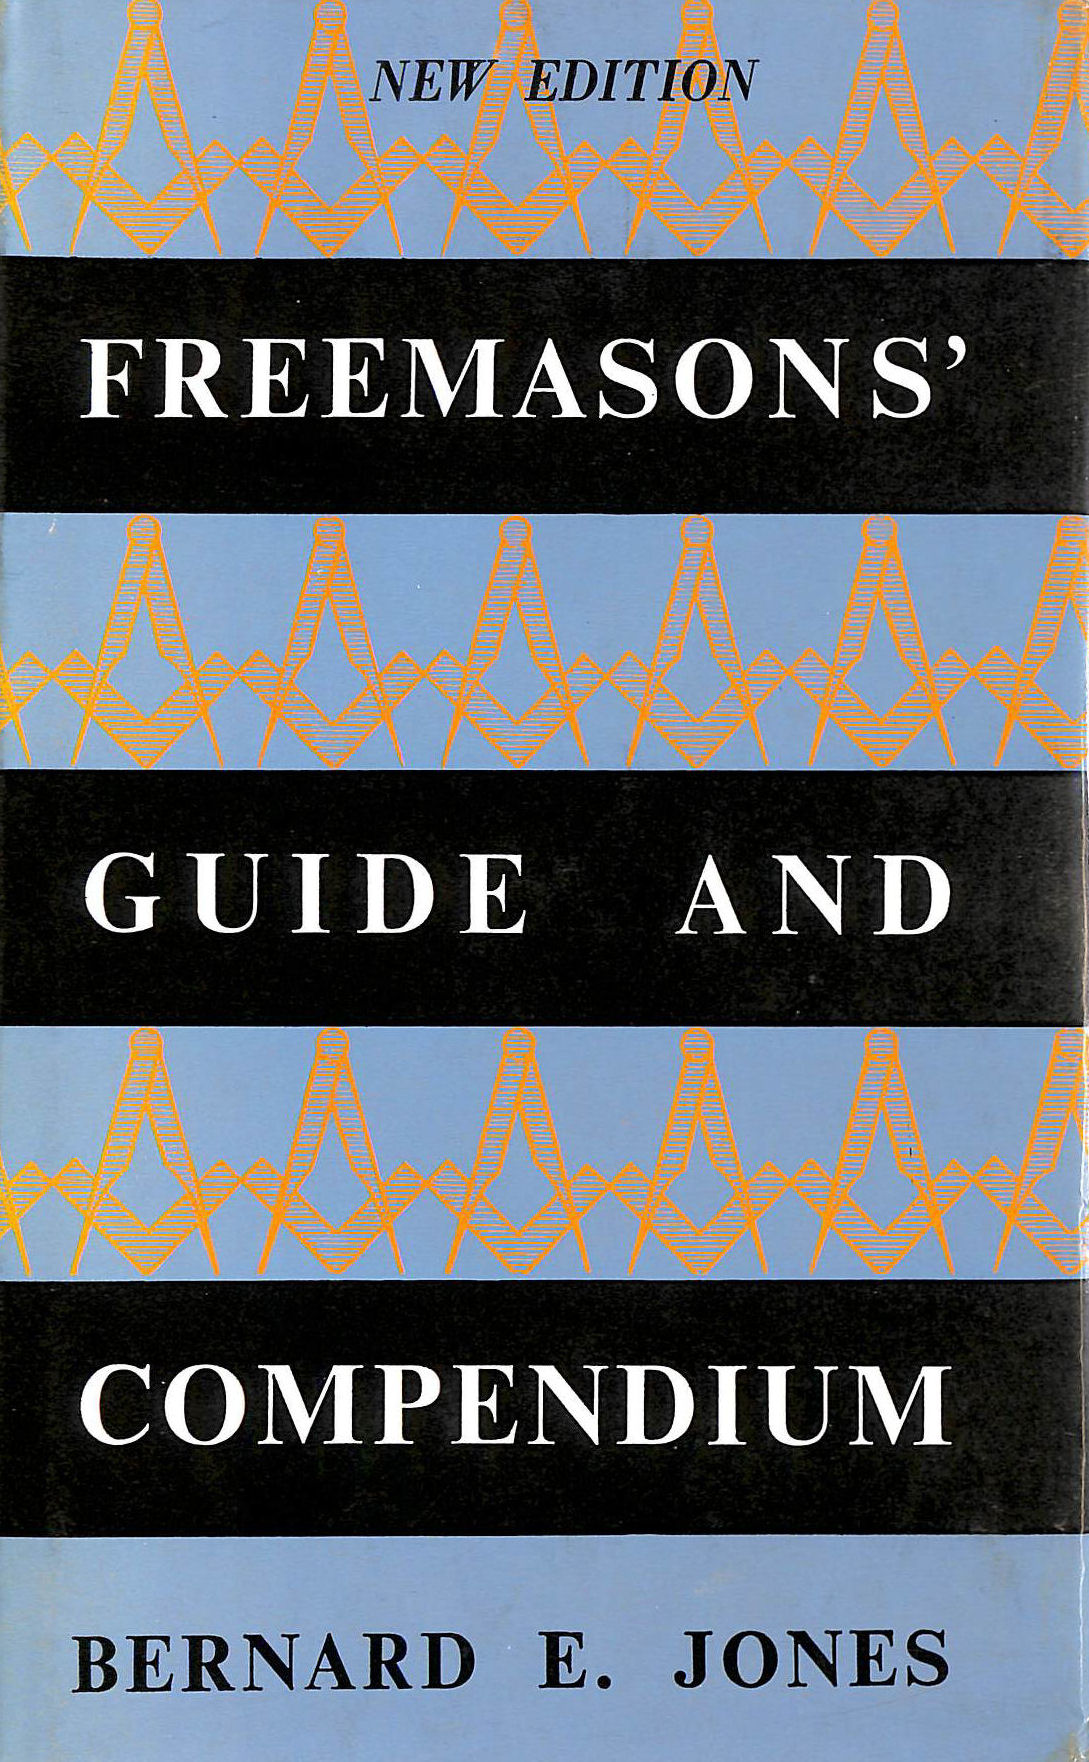 Image for Freemasons' Guide and Compendium